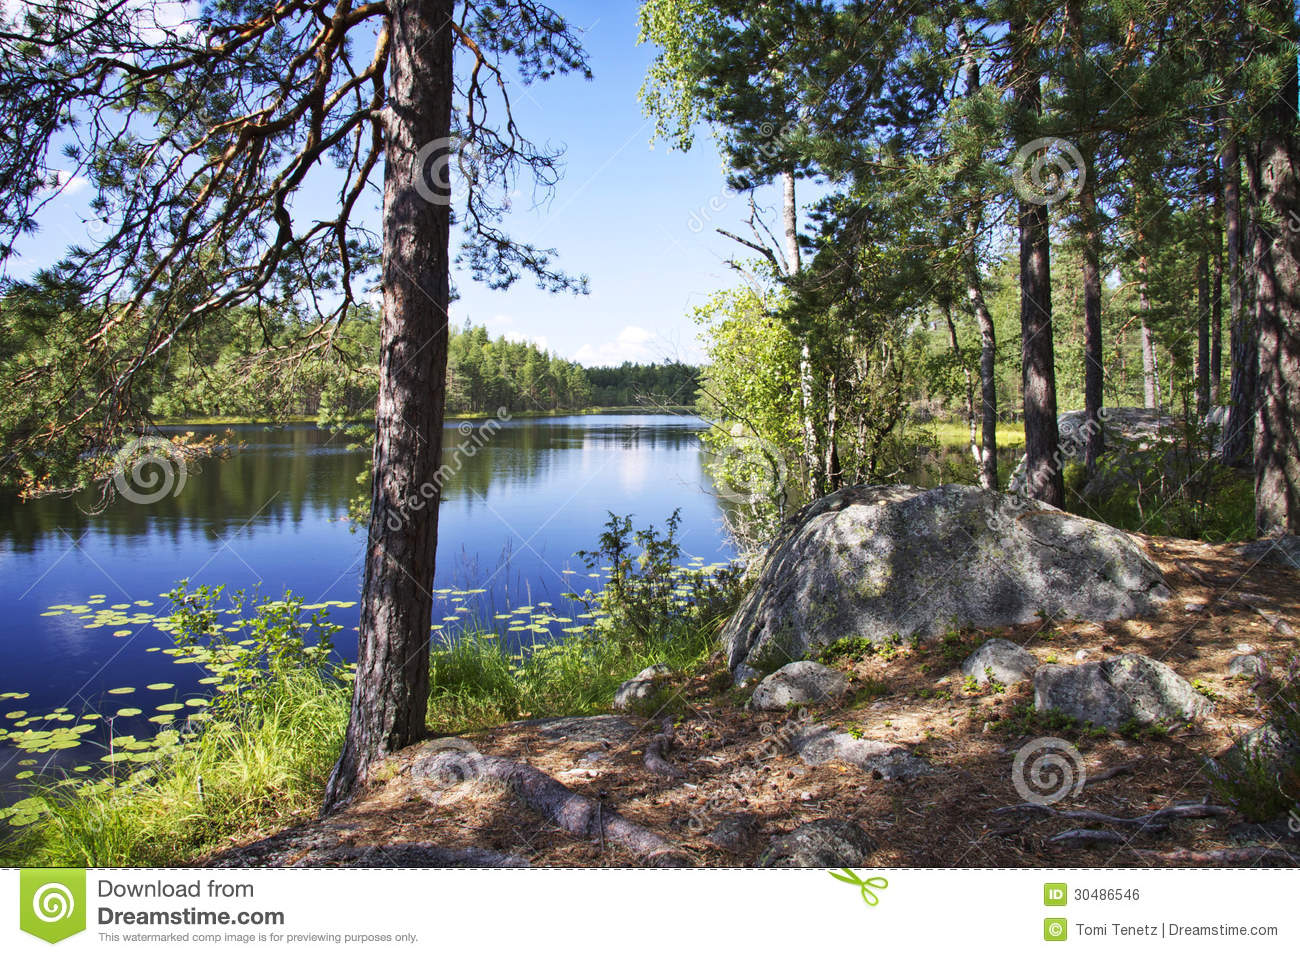 Log cabin on a lake royalty free stock photography image 7866317 - Finland Summer Day By A Lake